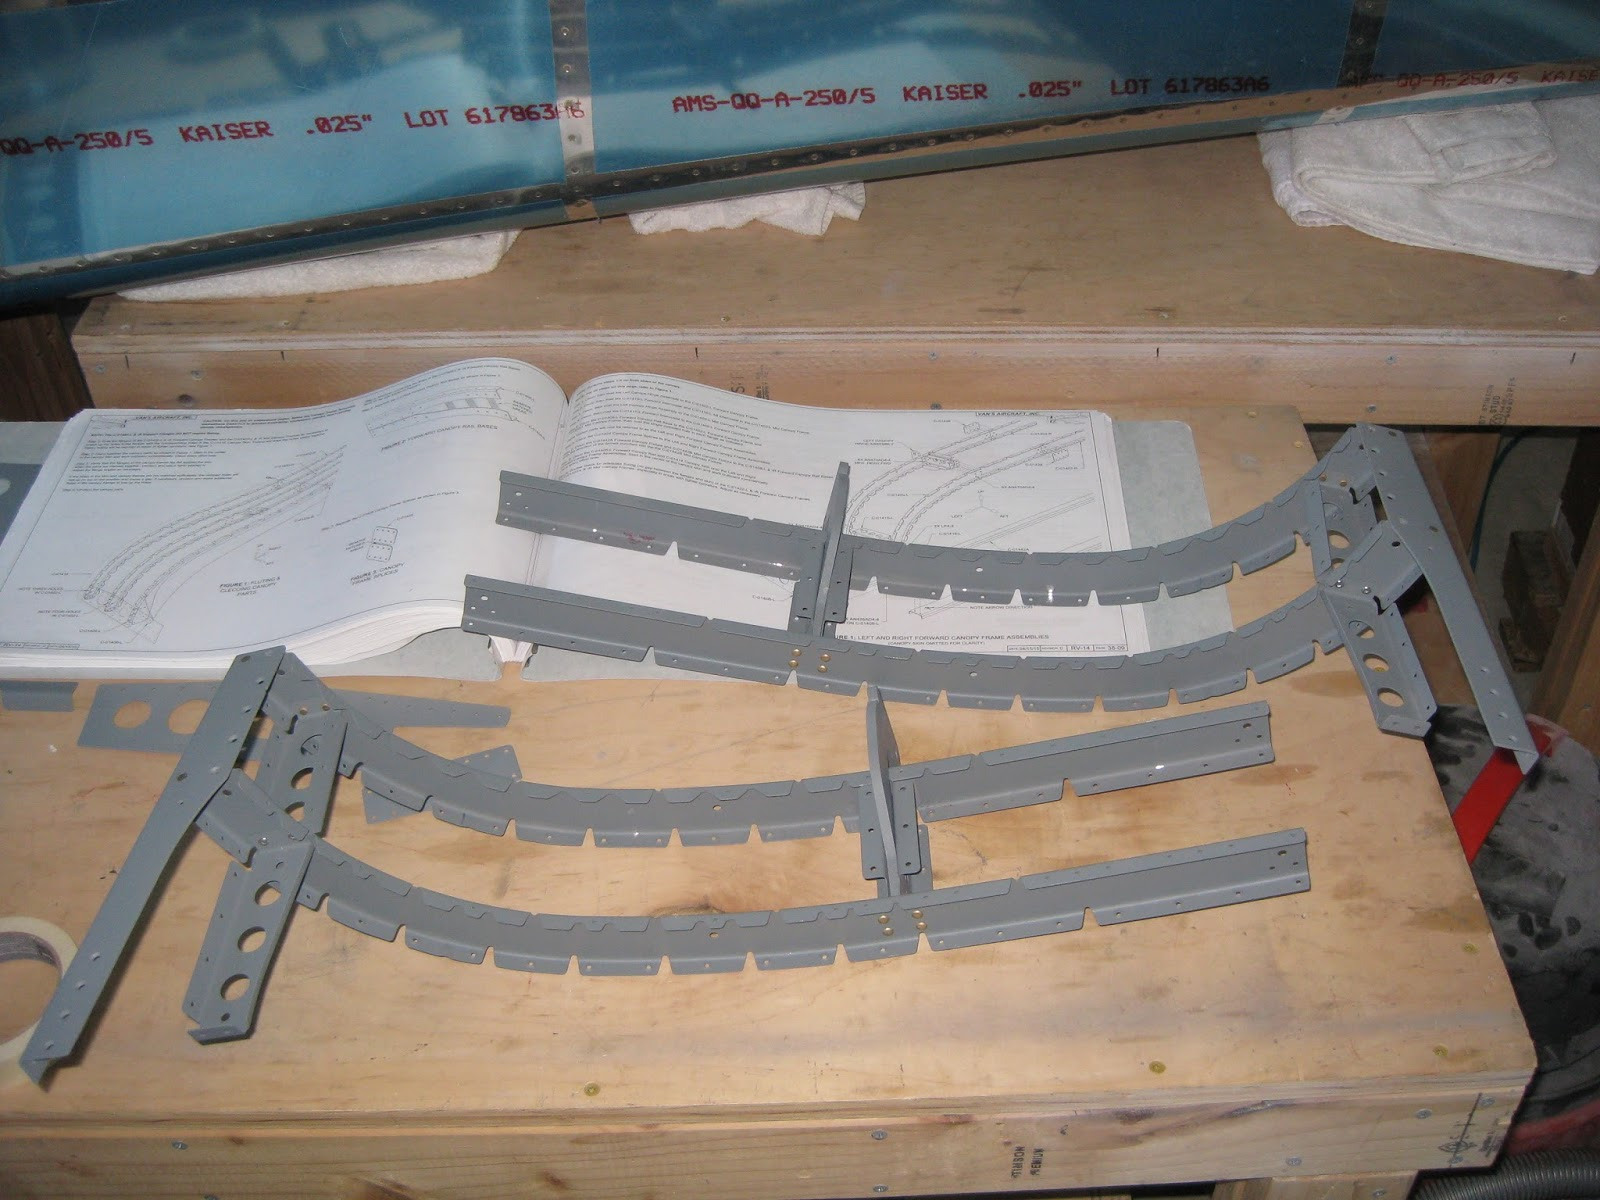 most of the rivets in the assemblies can be squeezed however the rivets attaching the canopy hinge assemblies to the canopy frames were bucked left